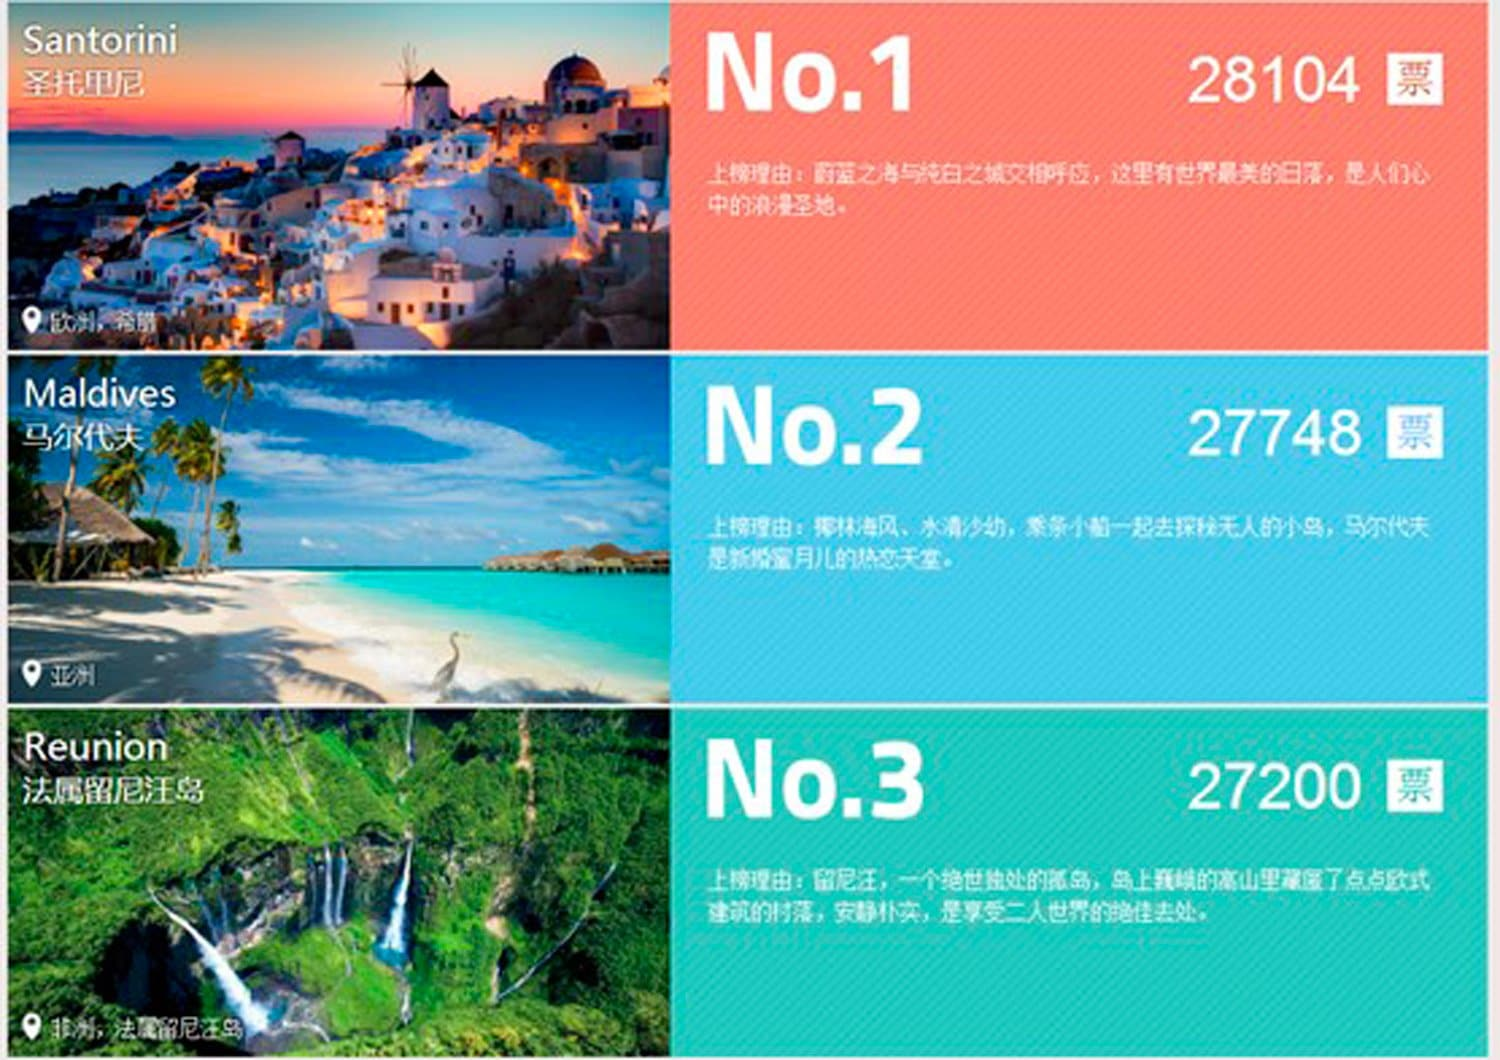 ARTICLE-Reunion Island - Overwhelmingly approved by the tourism industry & Chinese travellers !